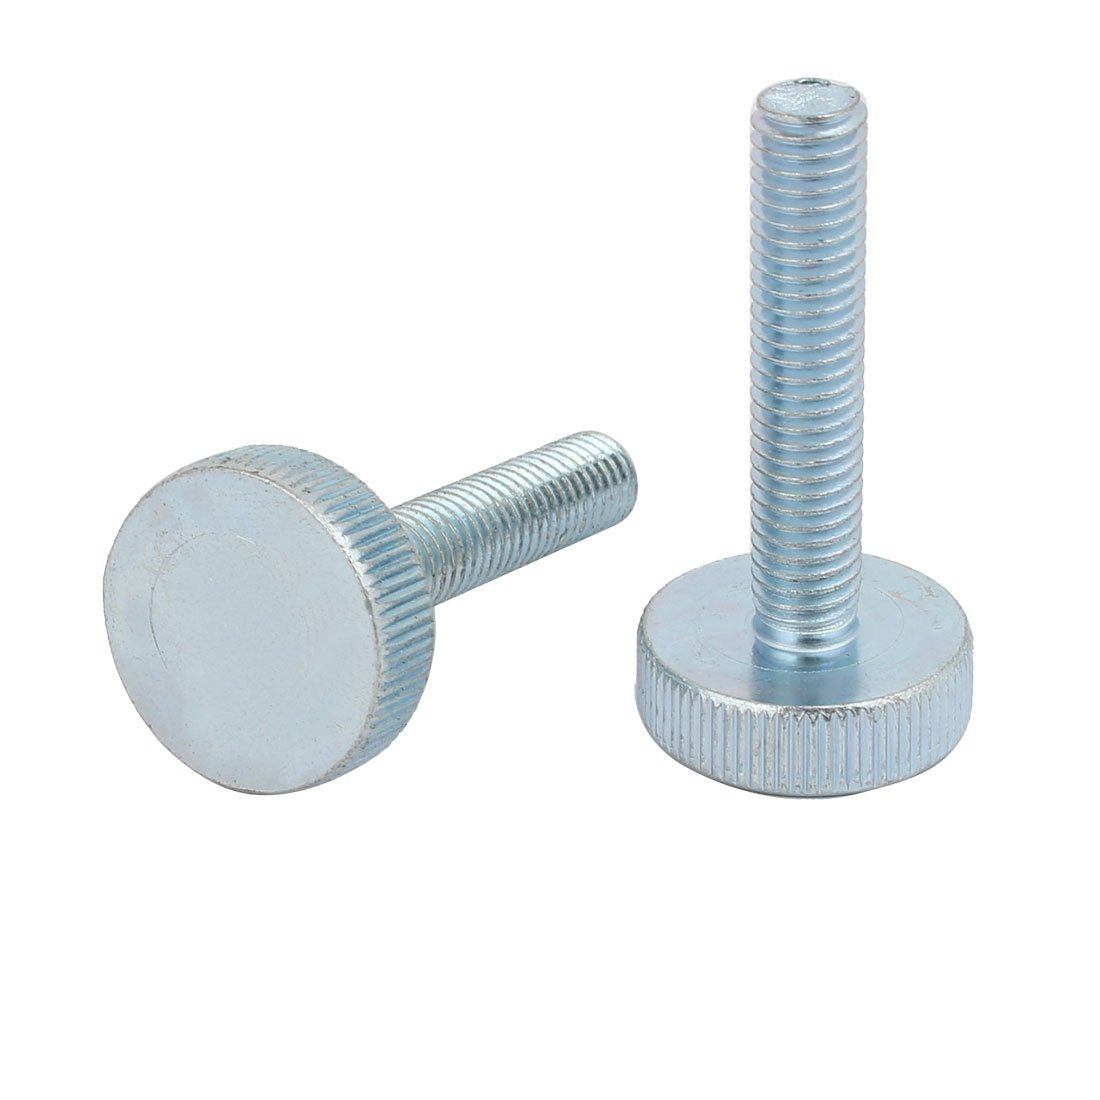 uxcell M3x6mm Round Shape Knurled Phillips Head Thumb Screw 80pcs for Computer PC Case